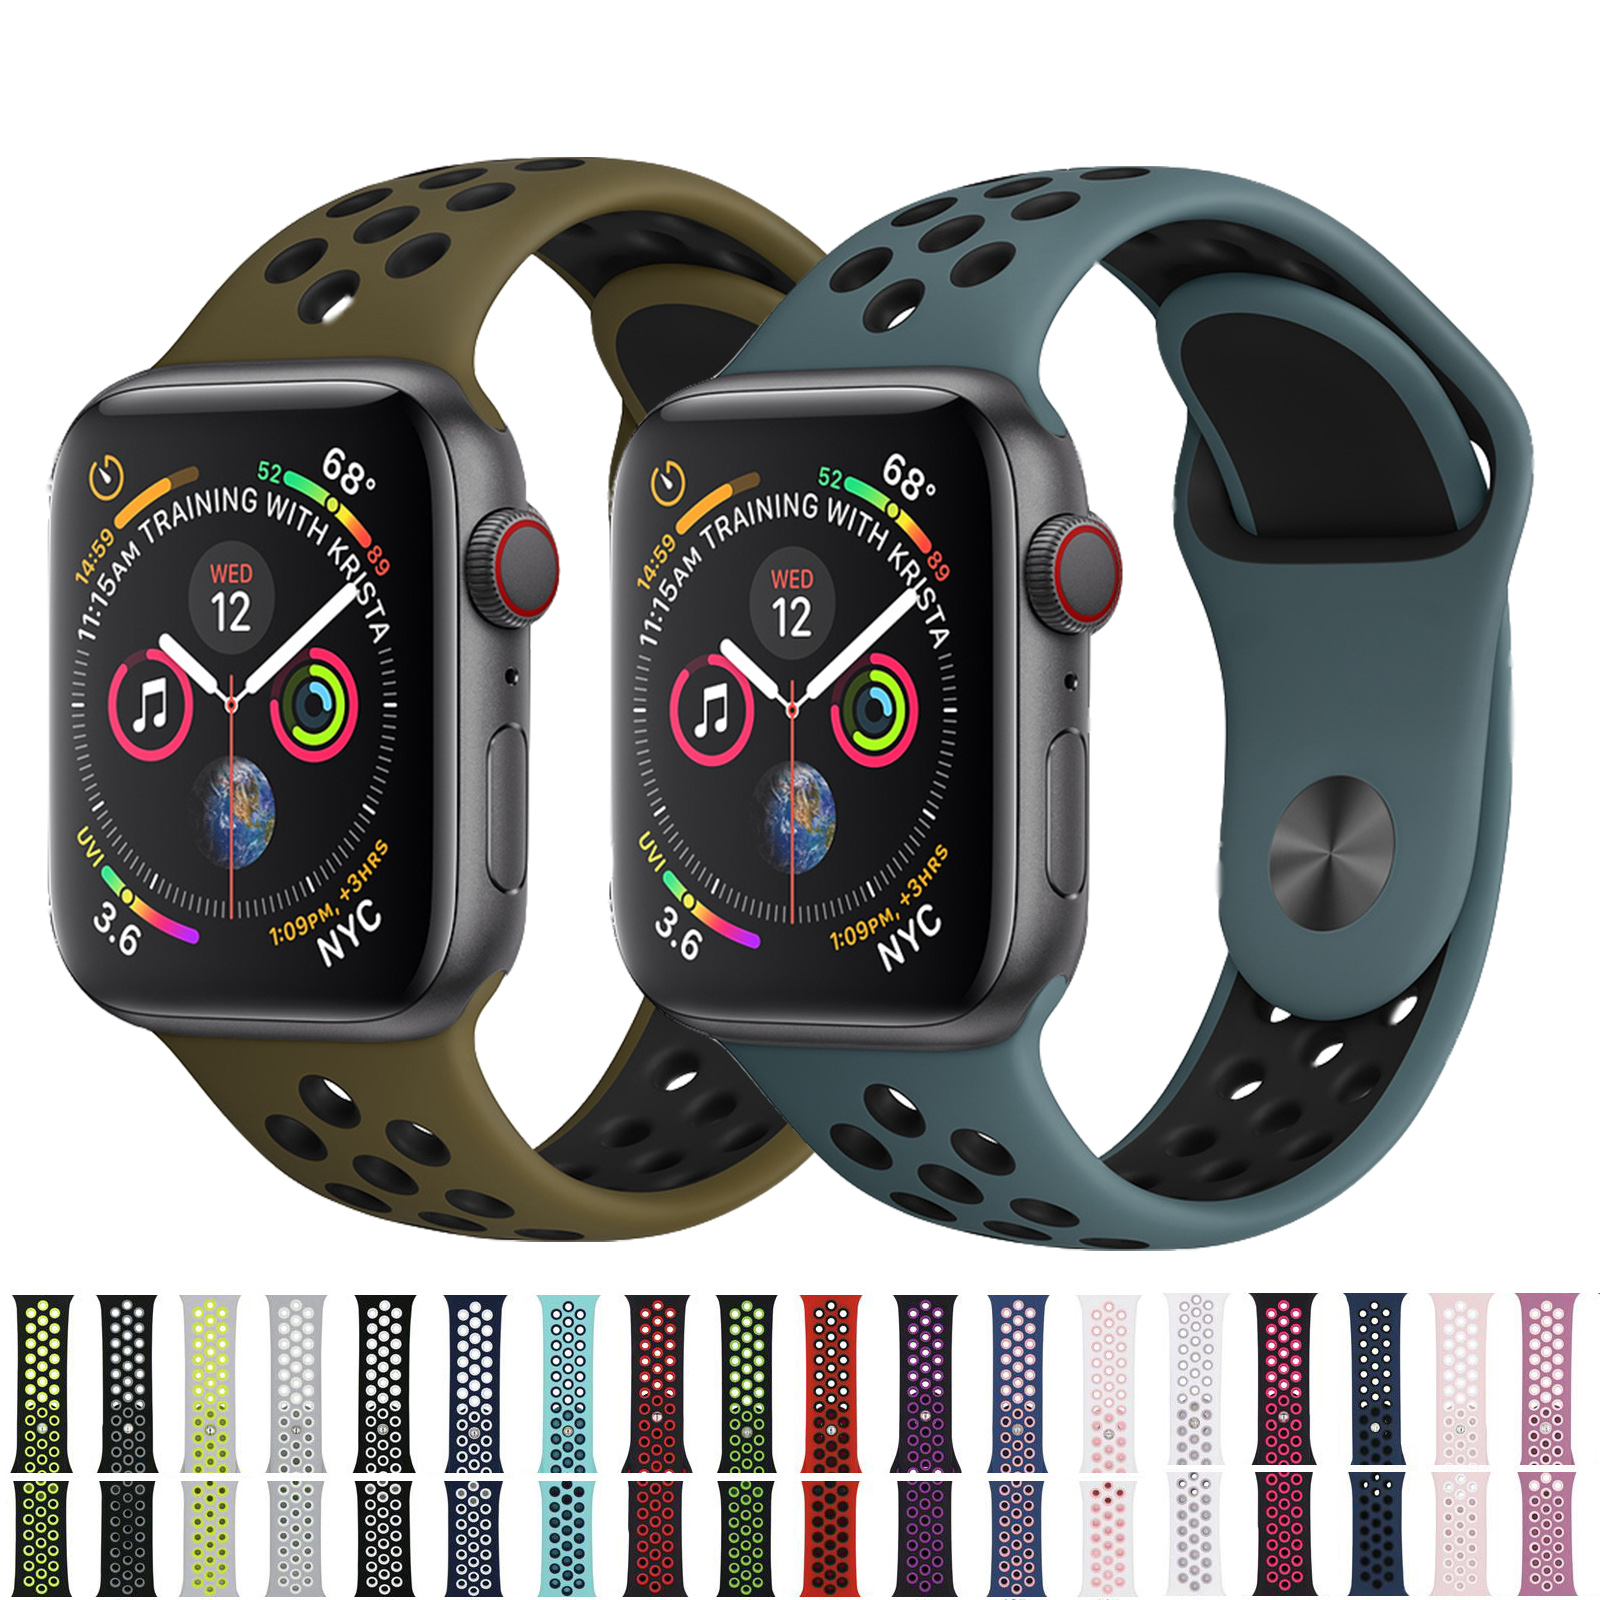 The Fashionable Sports Silicone Watch Strap Is Apple Watch Band 42mm 38mm 40mm 44mm Bracelet  Iwatch Series 5/4/3/2/1